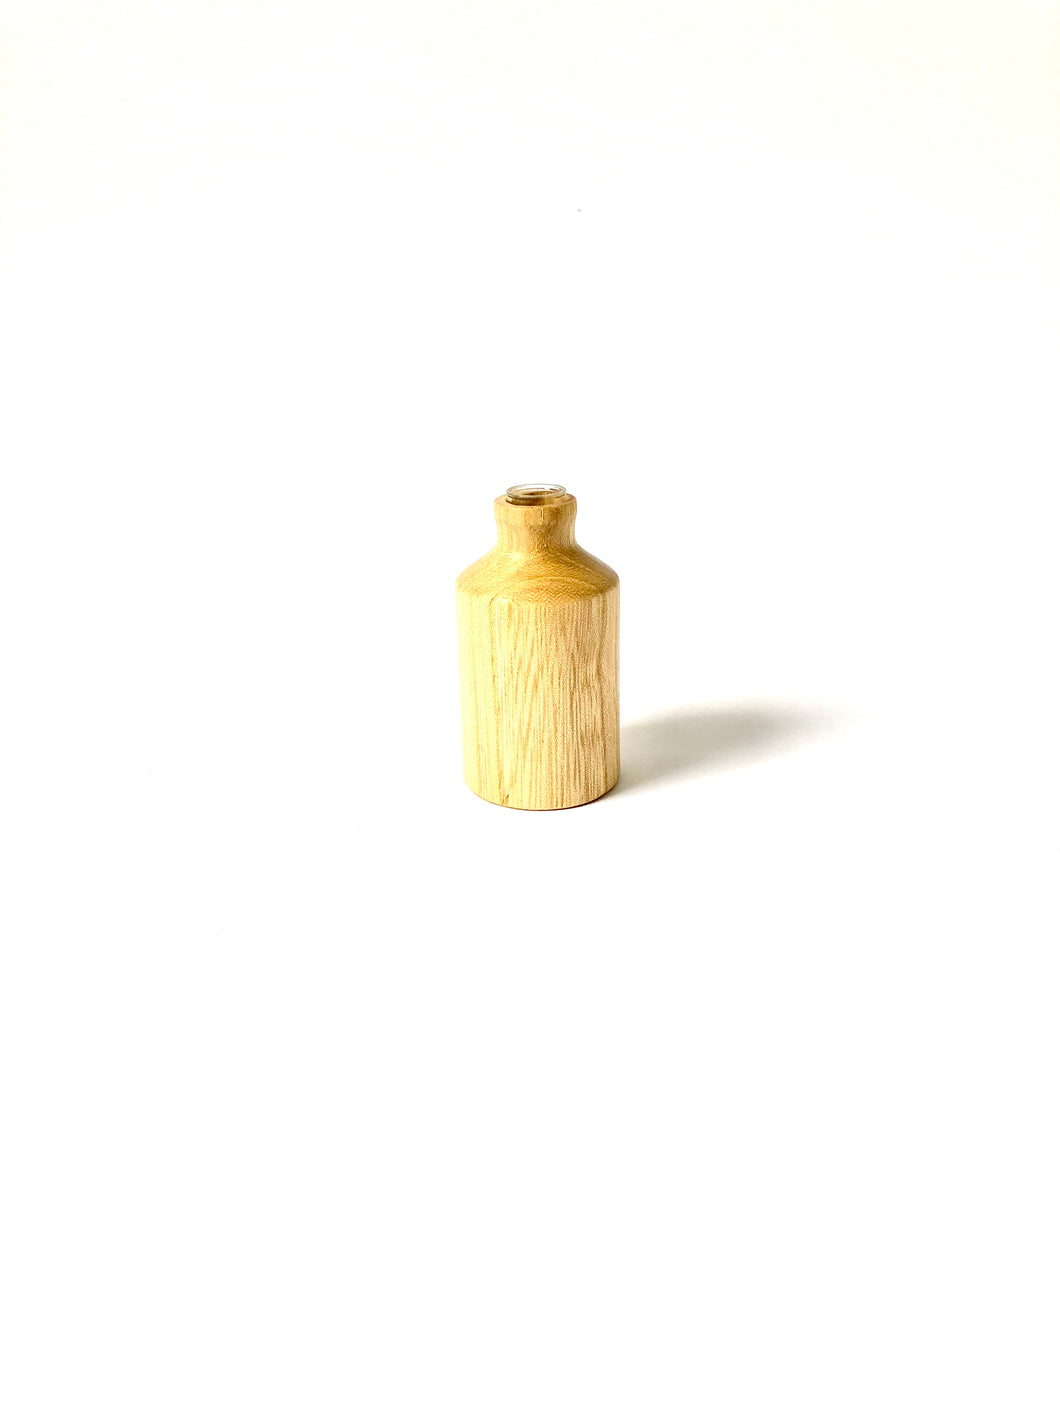 Japanese Handcrafted Wooden Miniature Vase Cherry Tree - 桜のチビ輪挿し